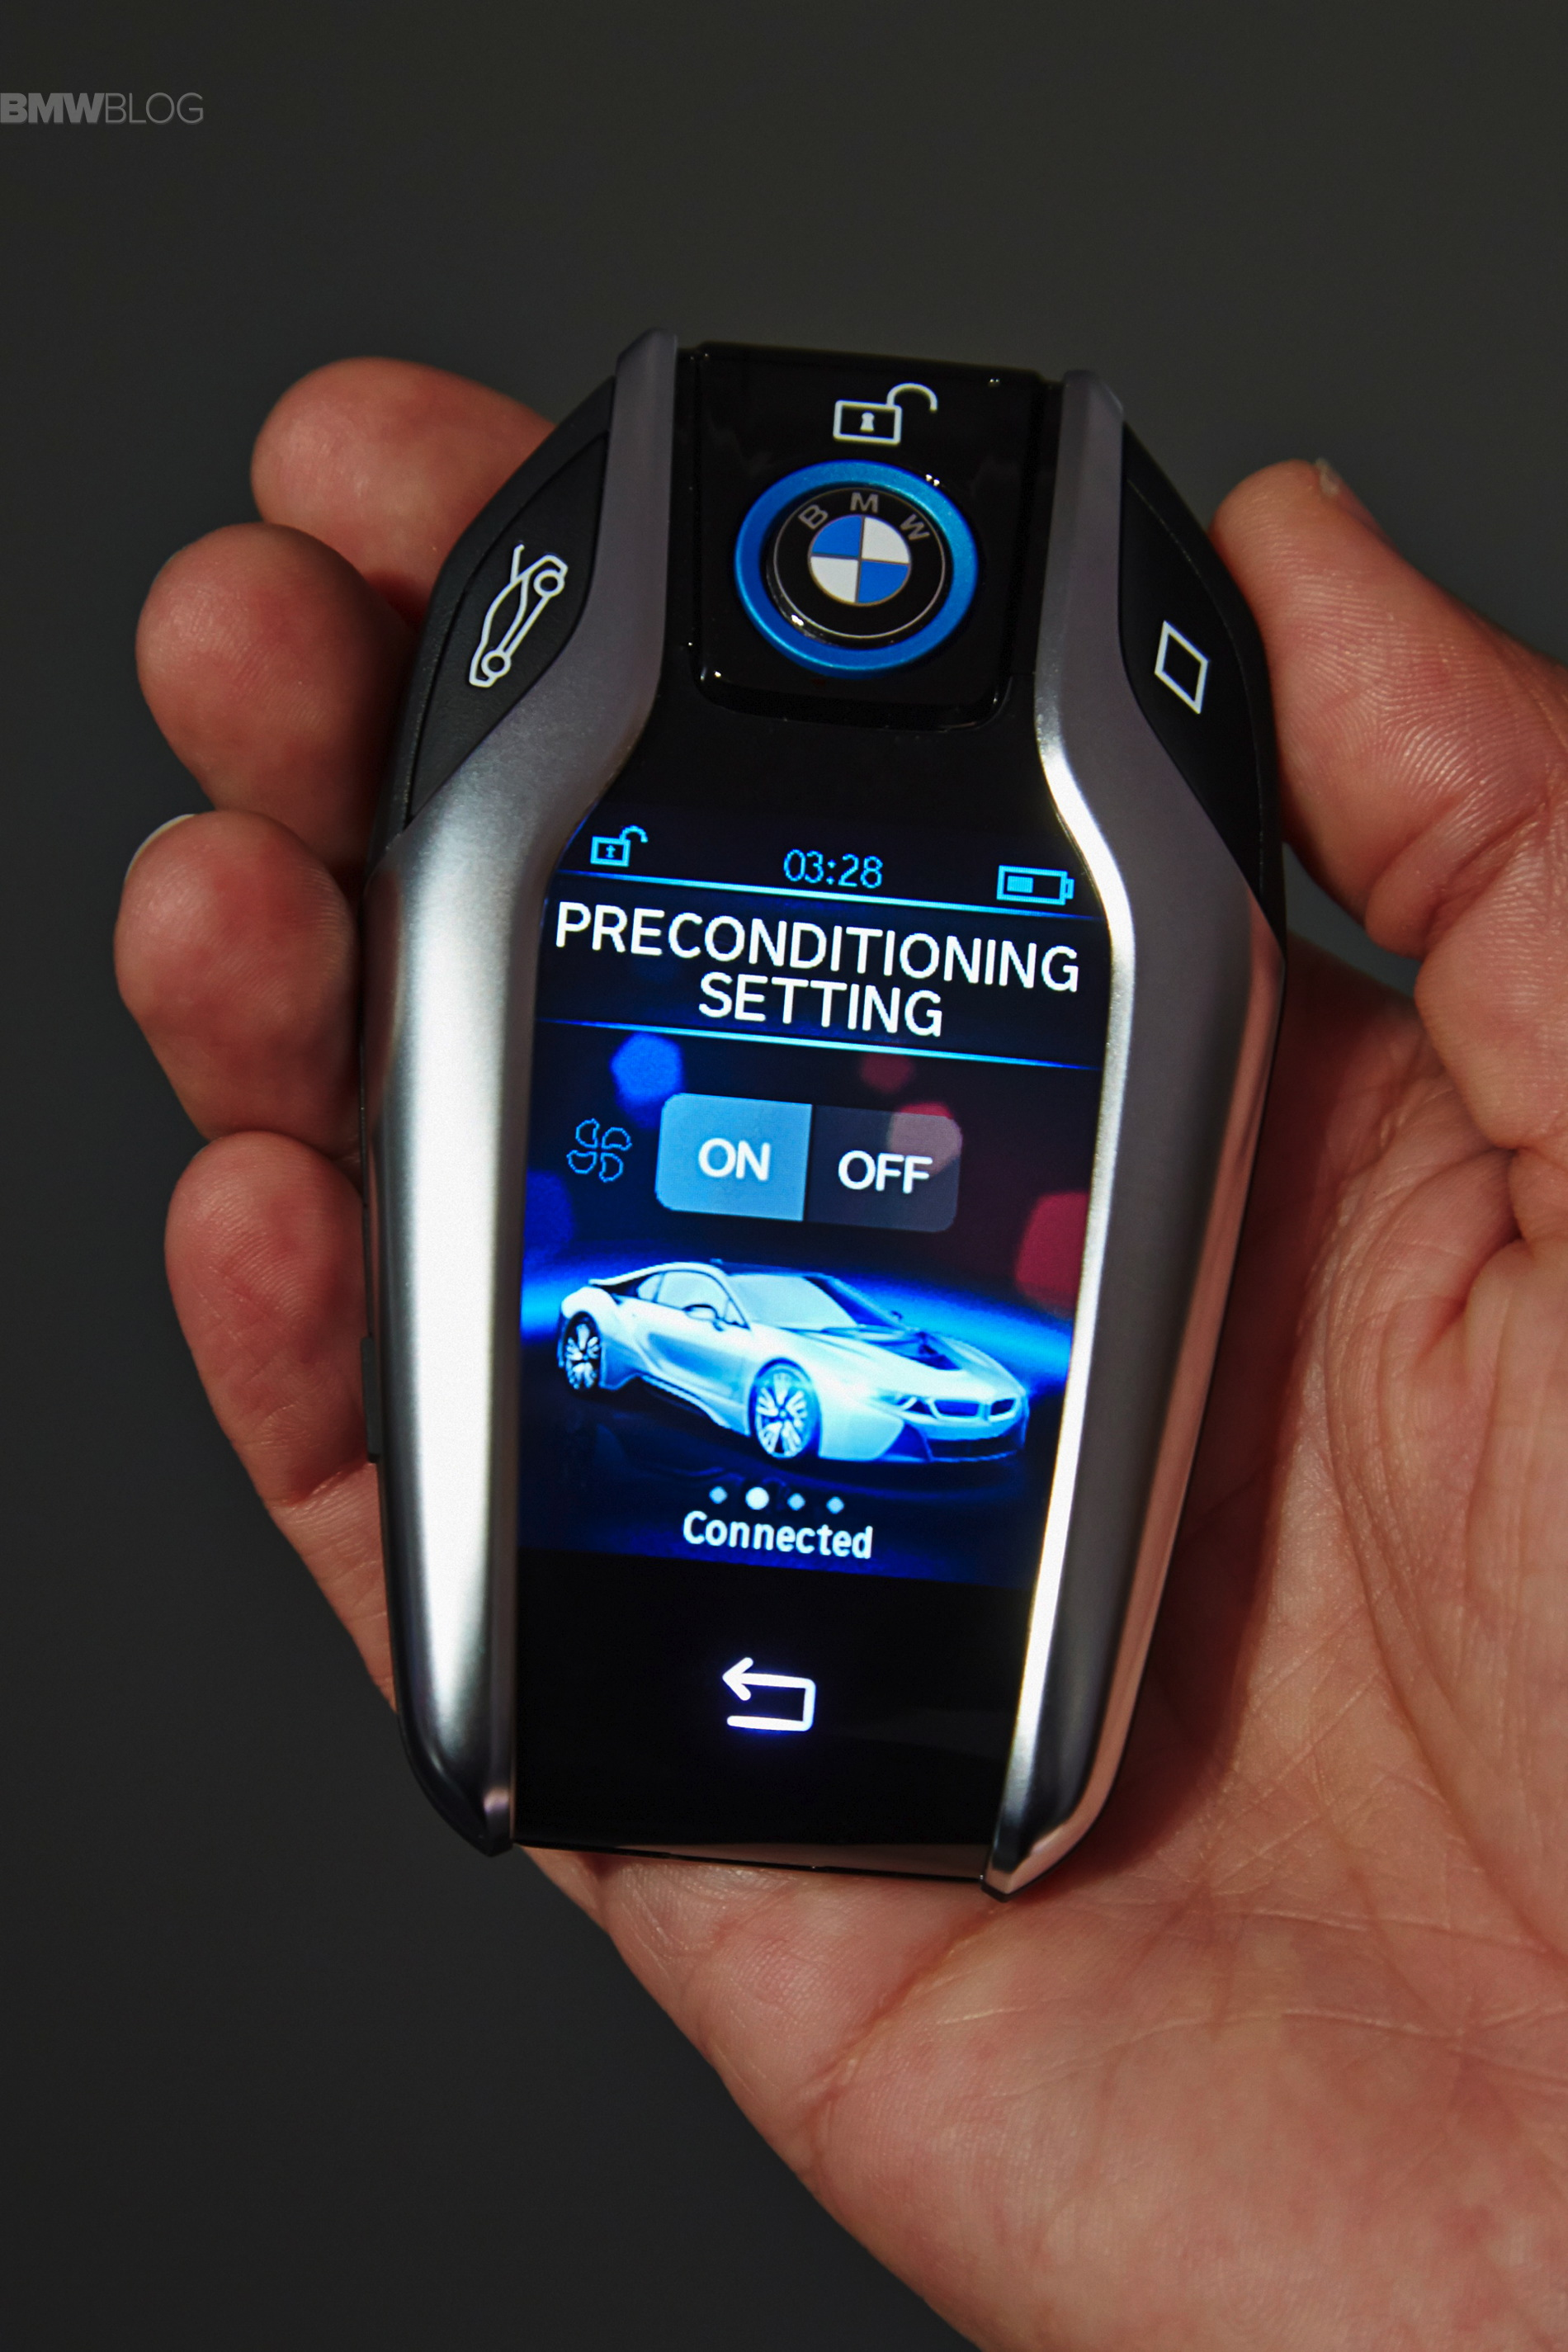 BMW Introduces The Key Fob With Touchscreen Display